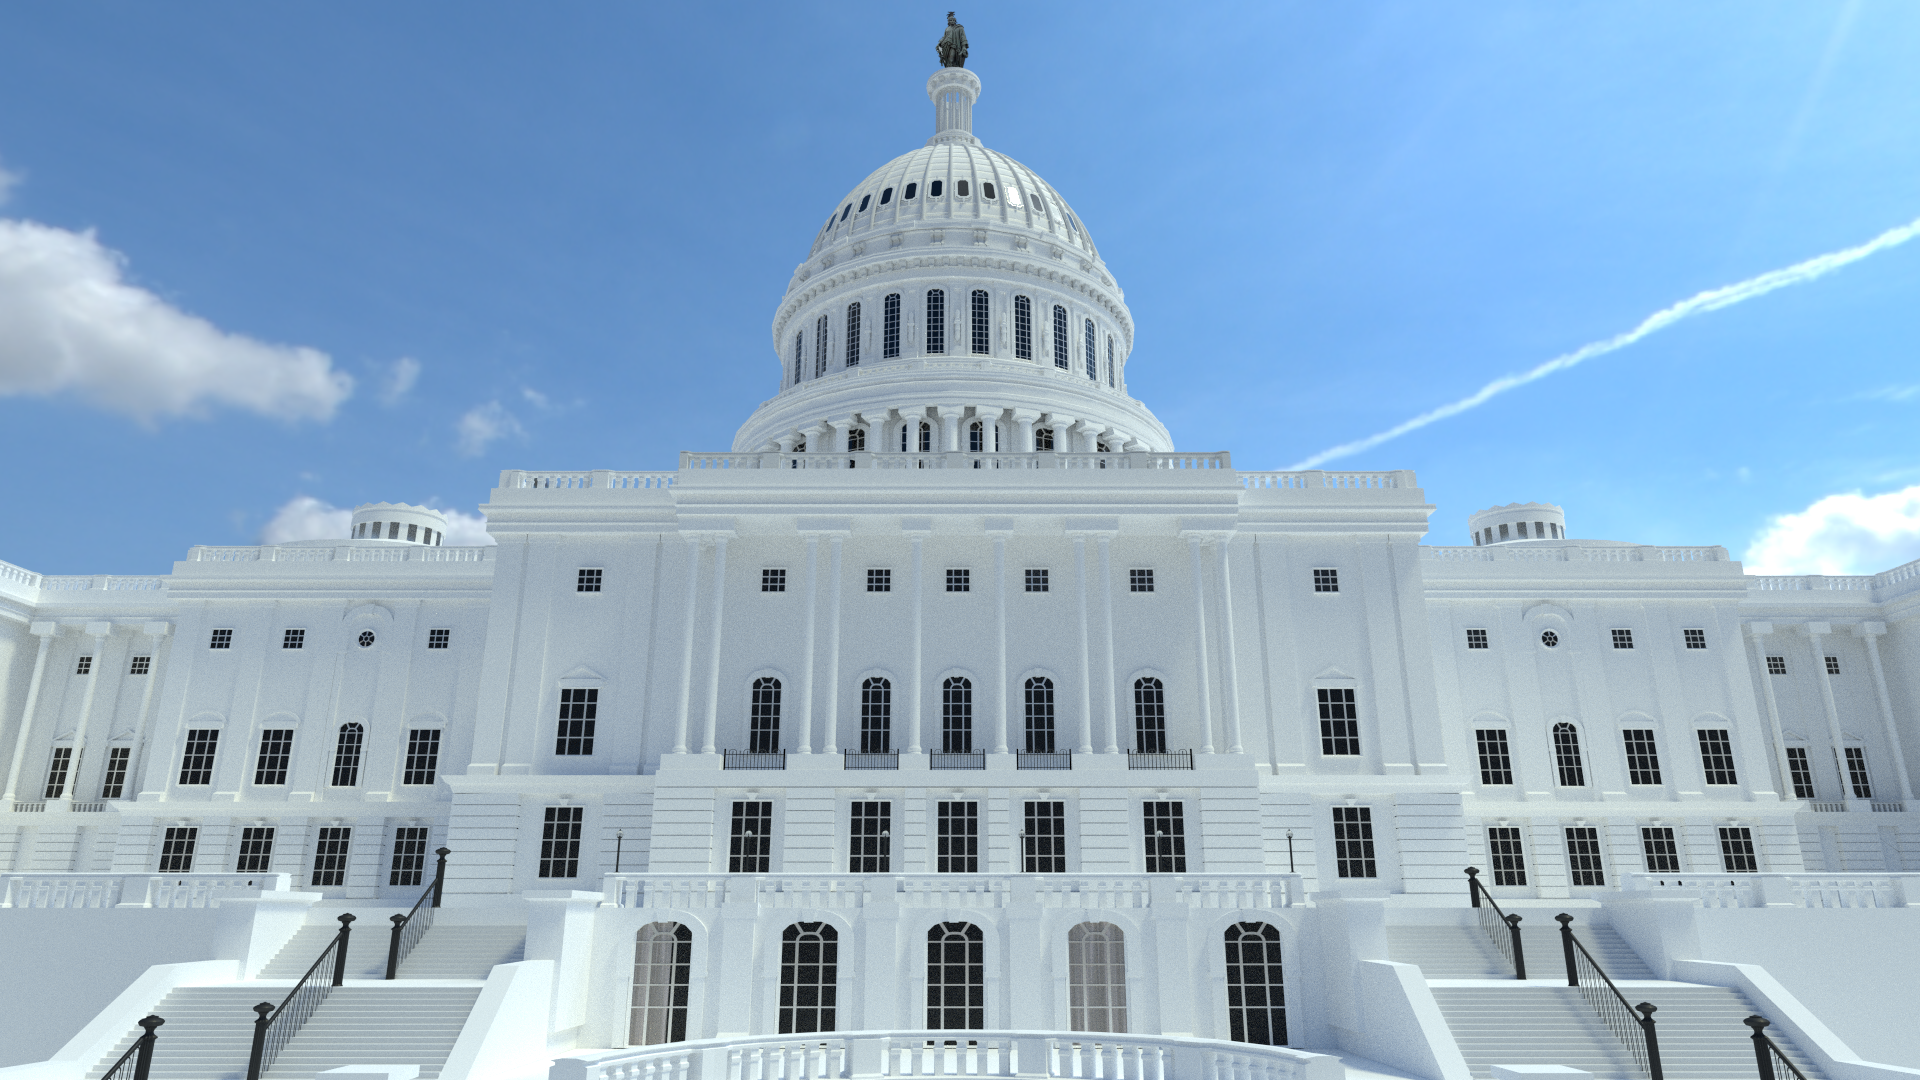 I Tried To Make The U.S. Capitol Building. - Capitol Building PNG HD